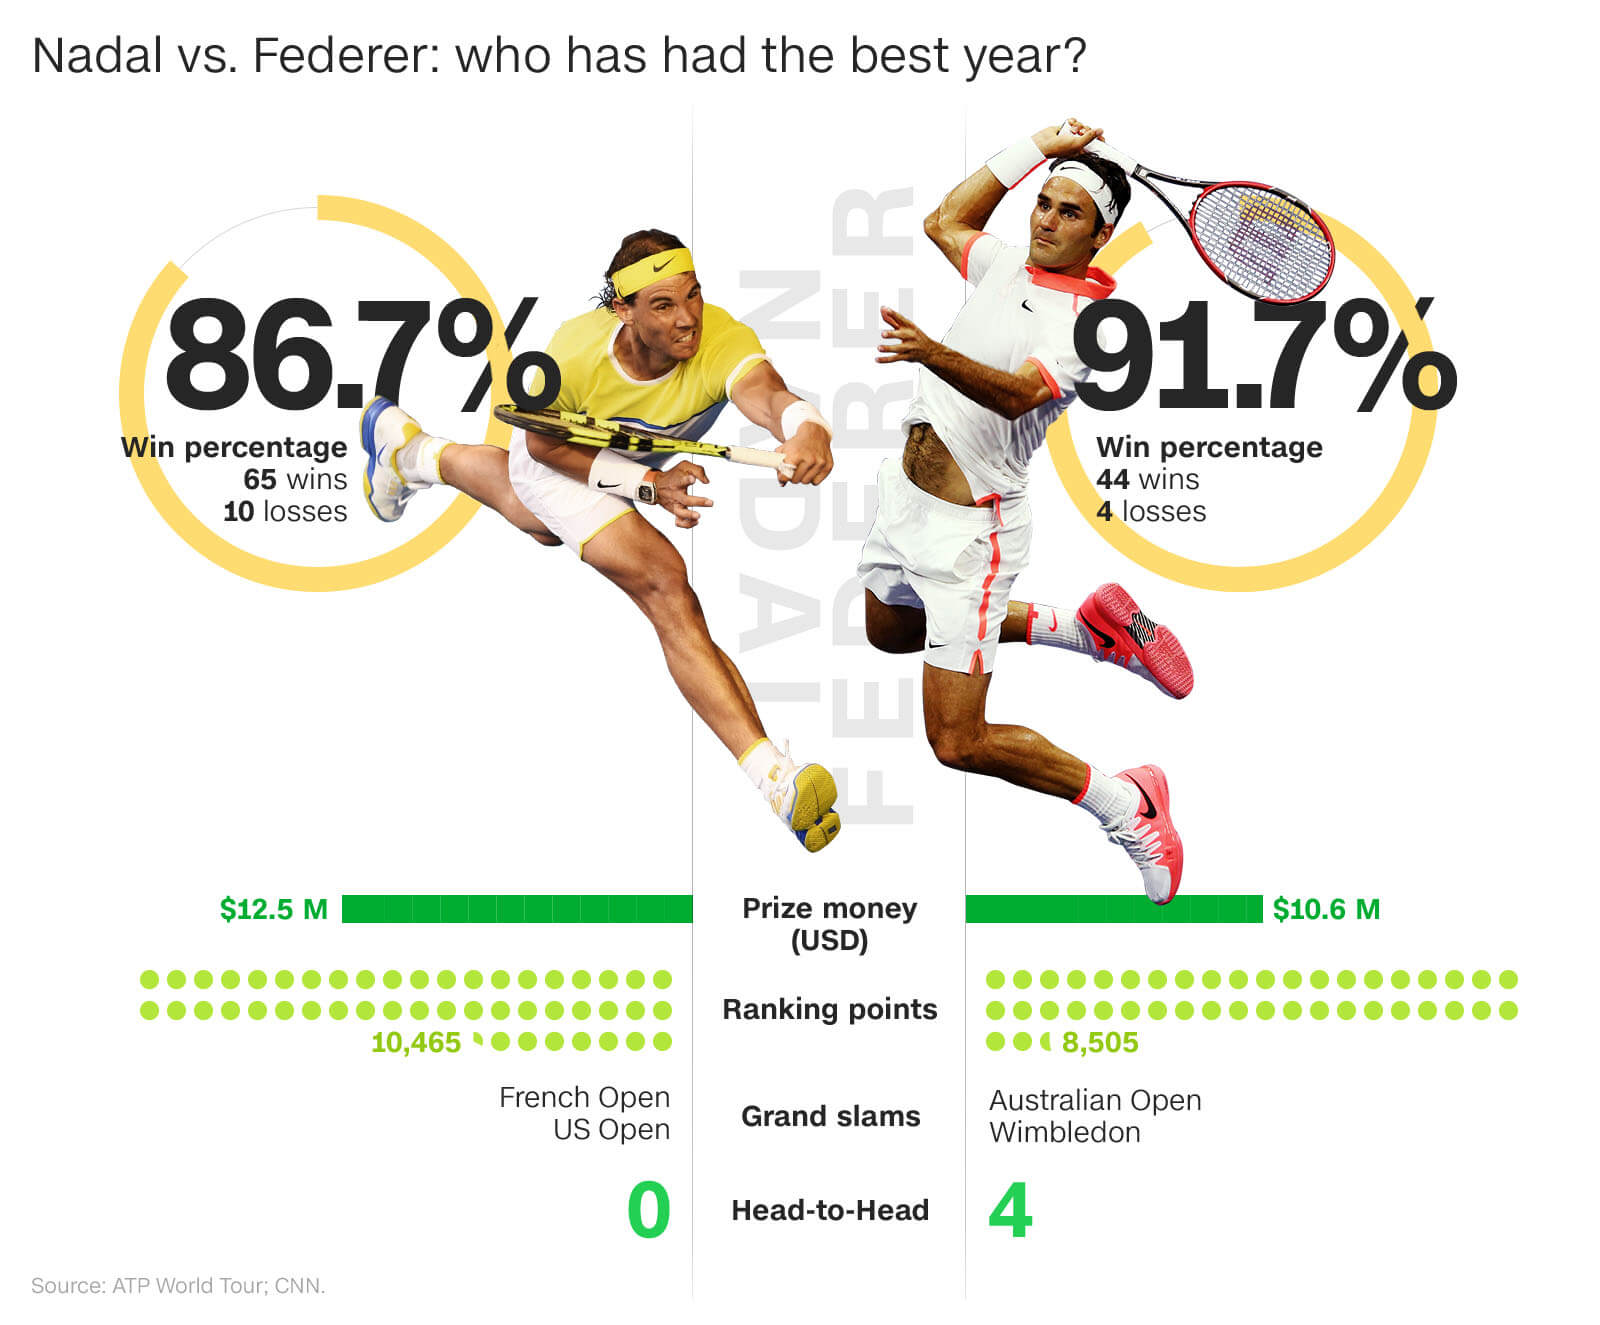 Federer or Nadal: Who has had the best year?